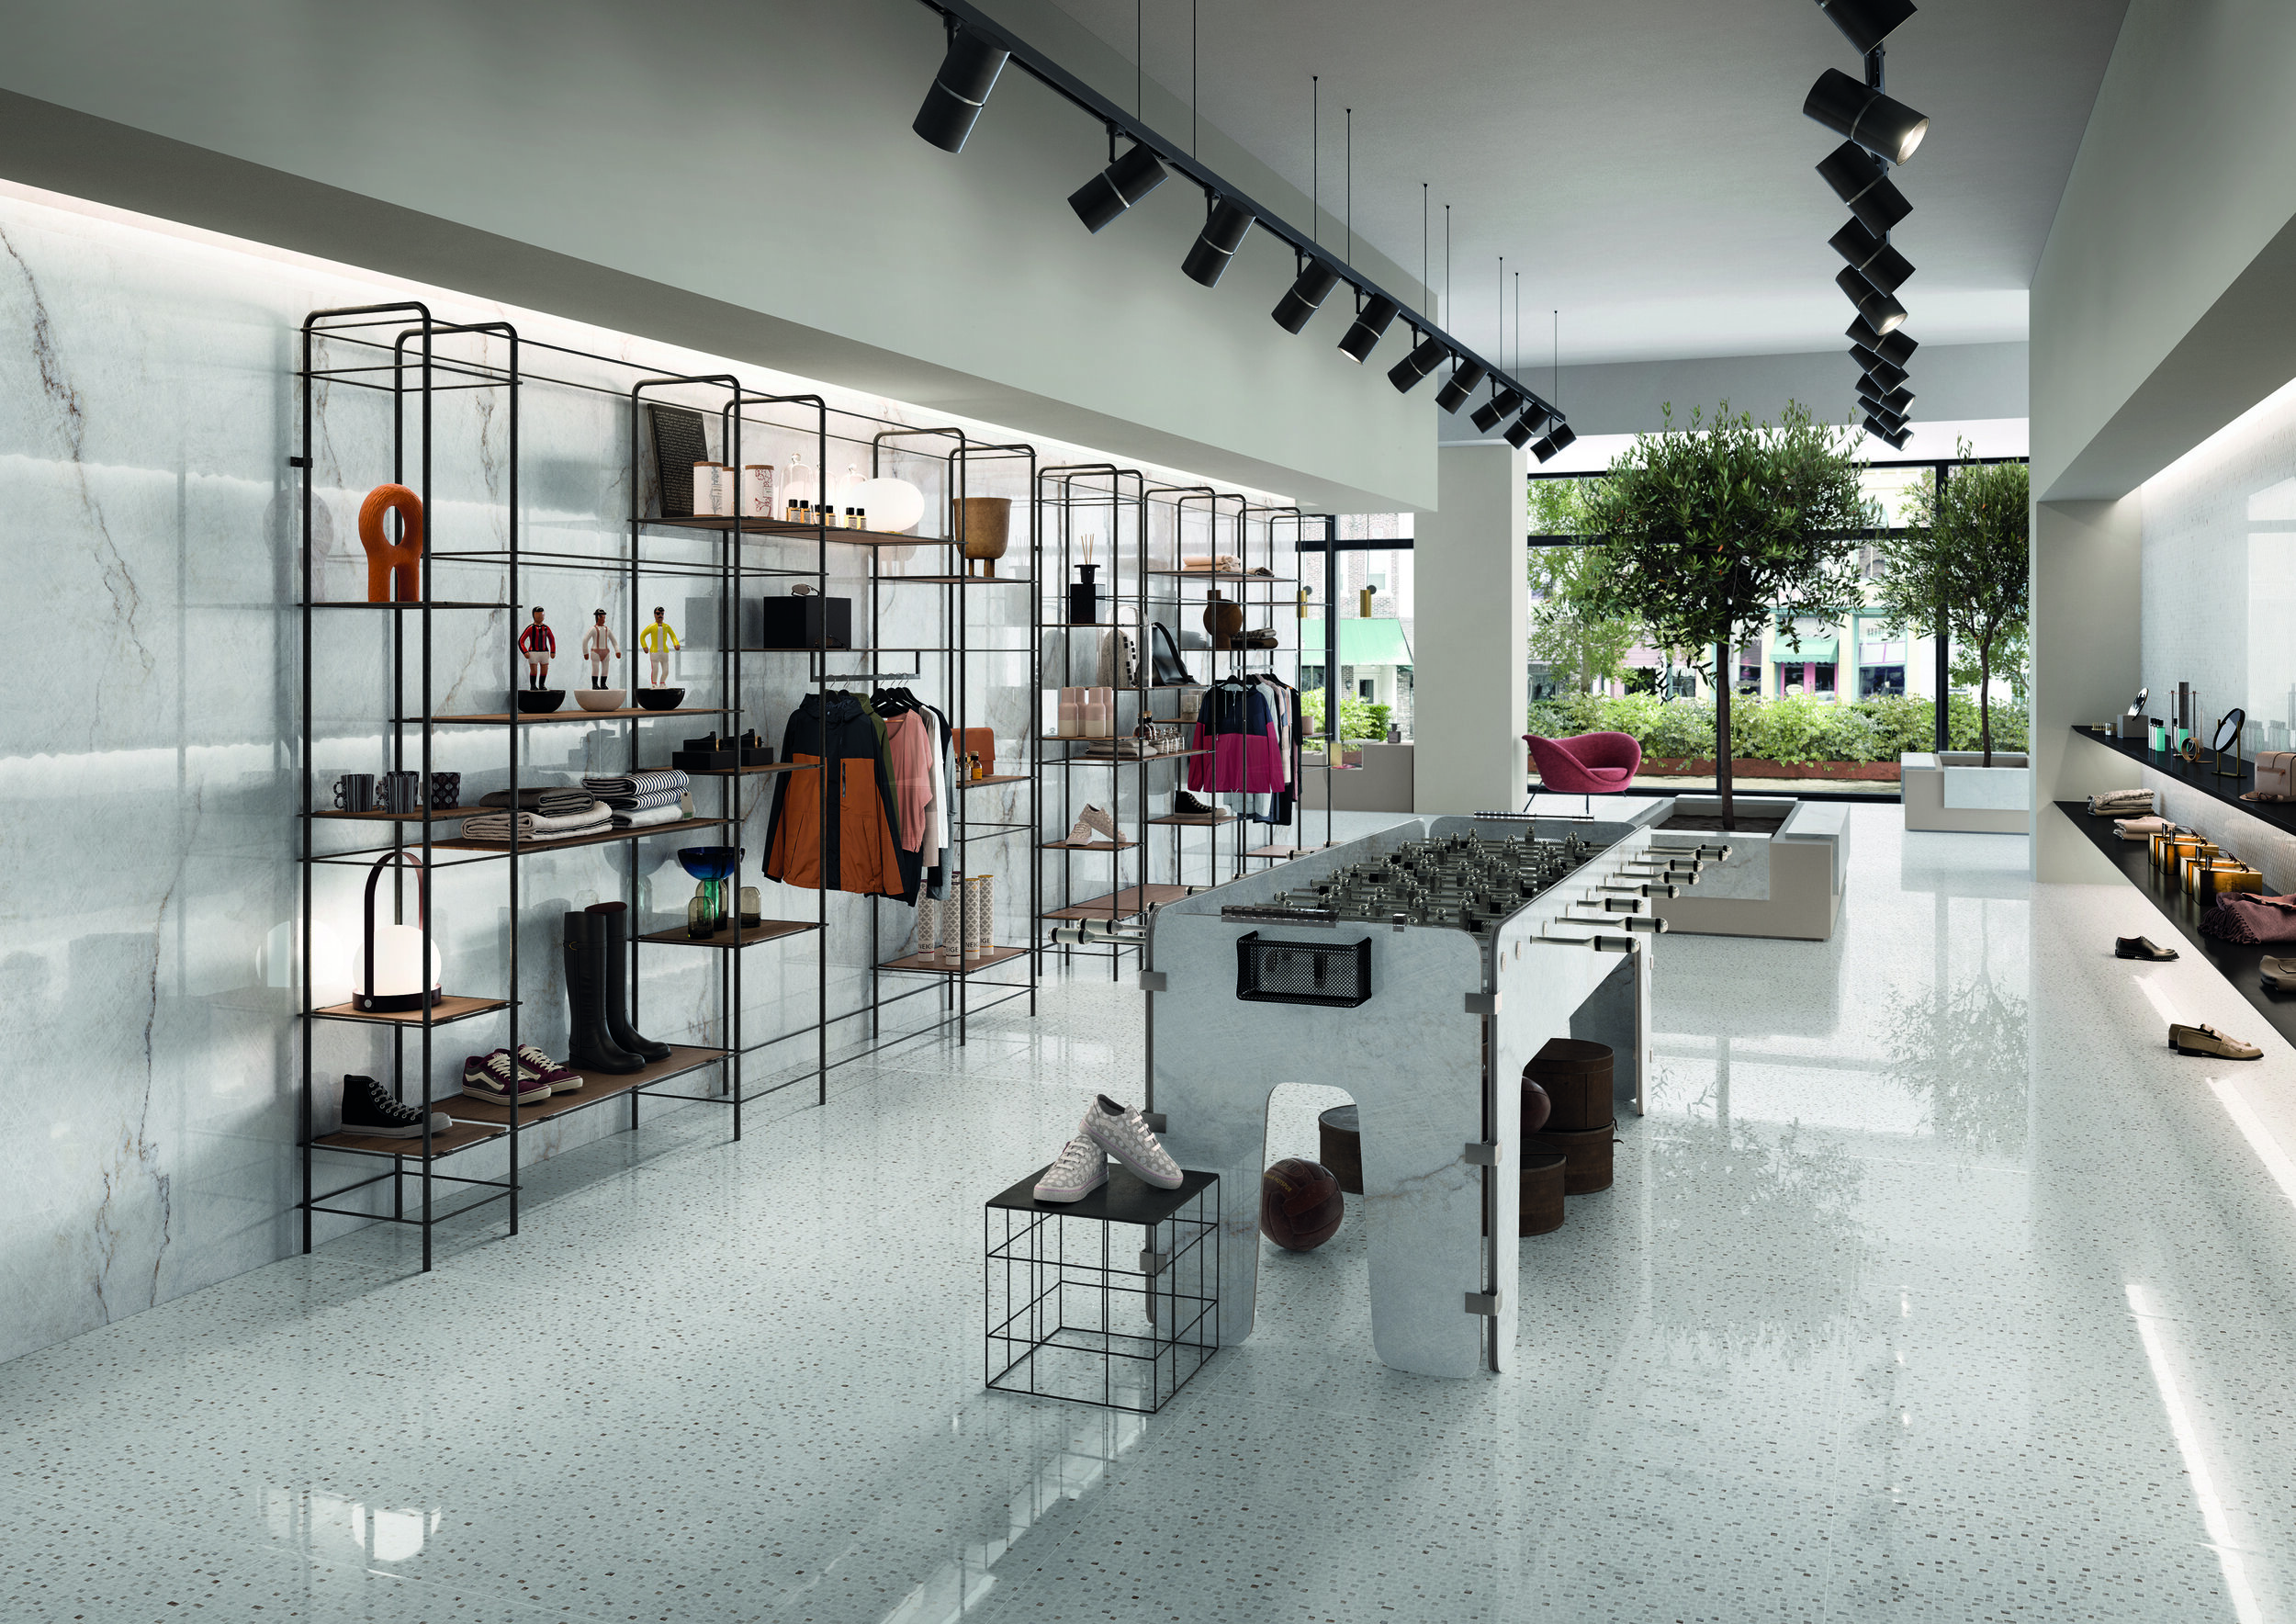 Tele Di Marmo Reloaded Padron Flooring And Design Center